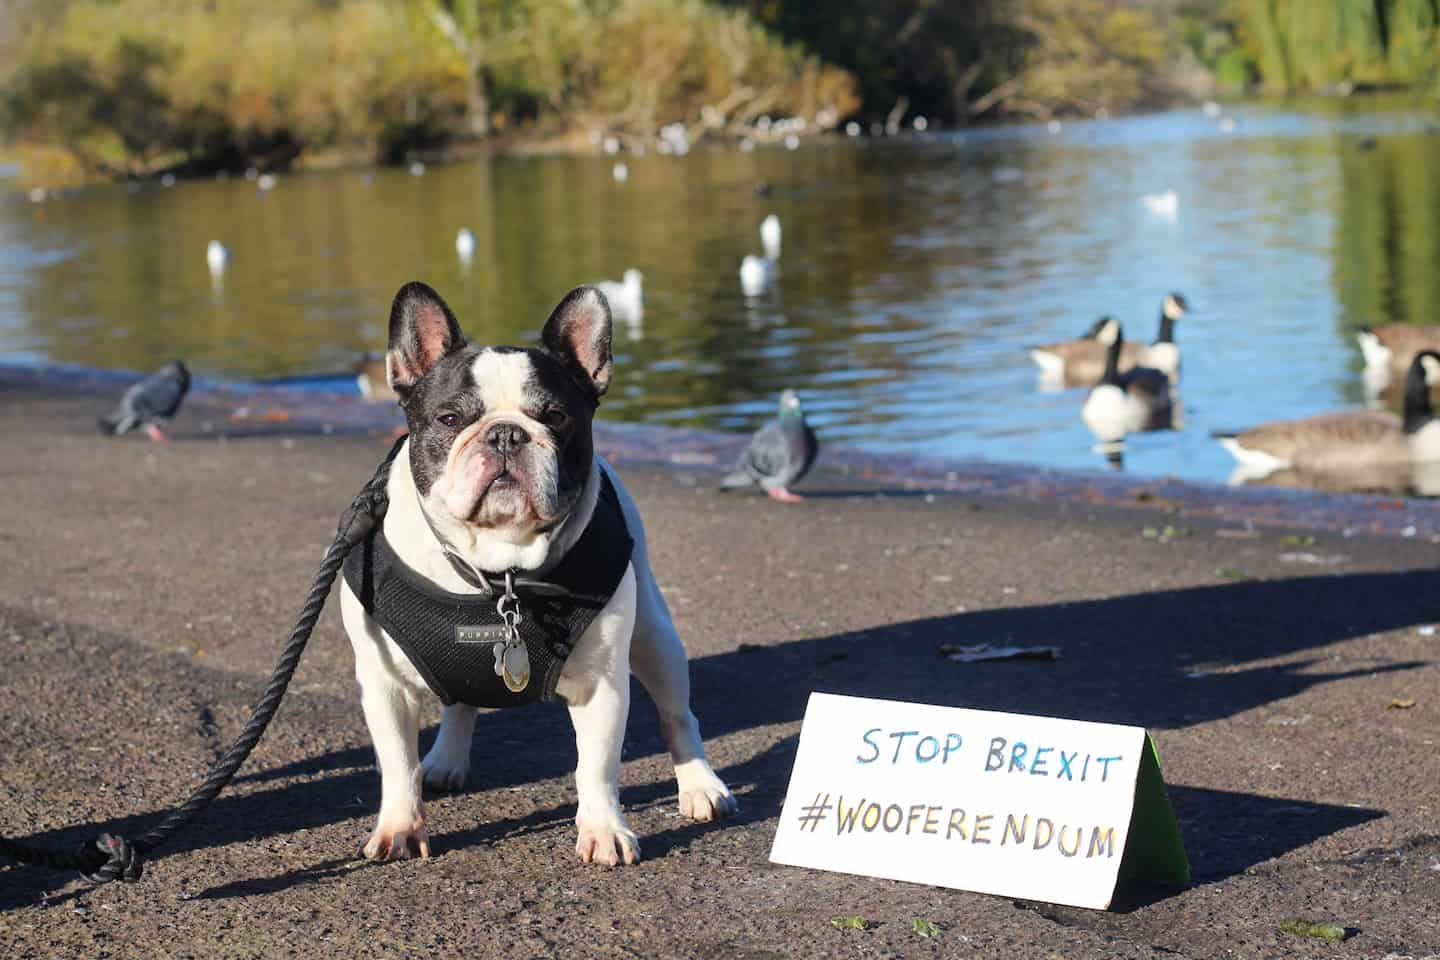 London Dogs To Bark Out Against Brexit on the Wooferendum March - Jedi French Bulldog